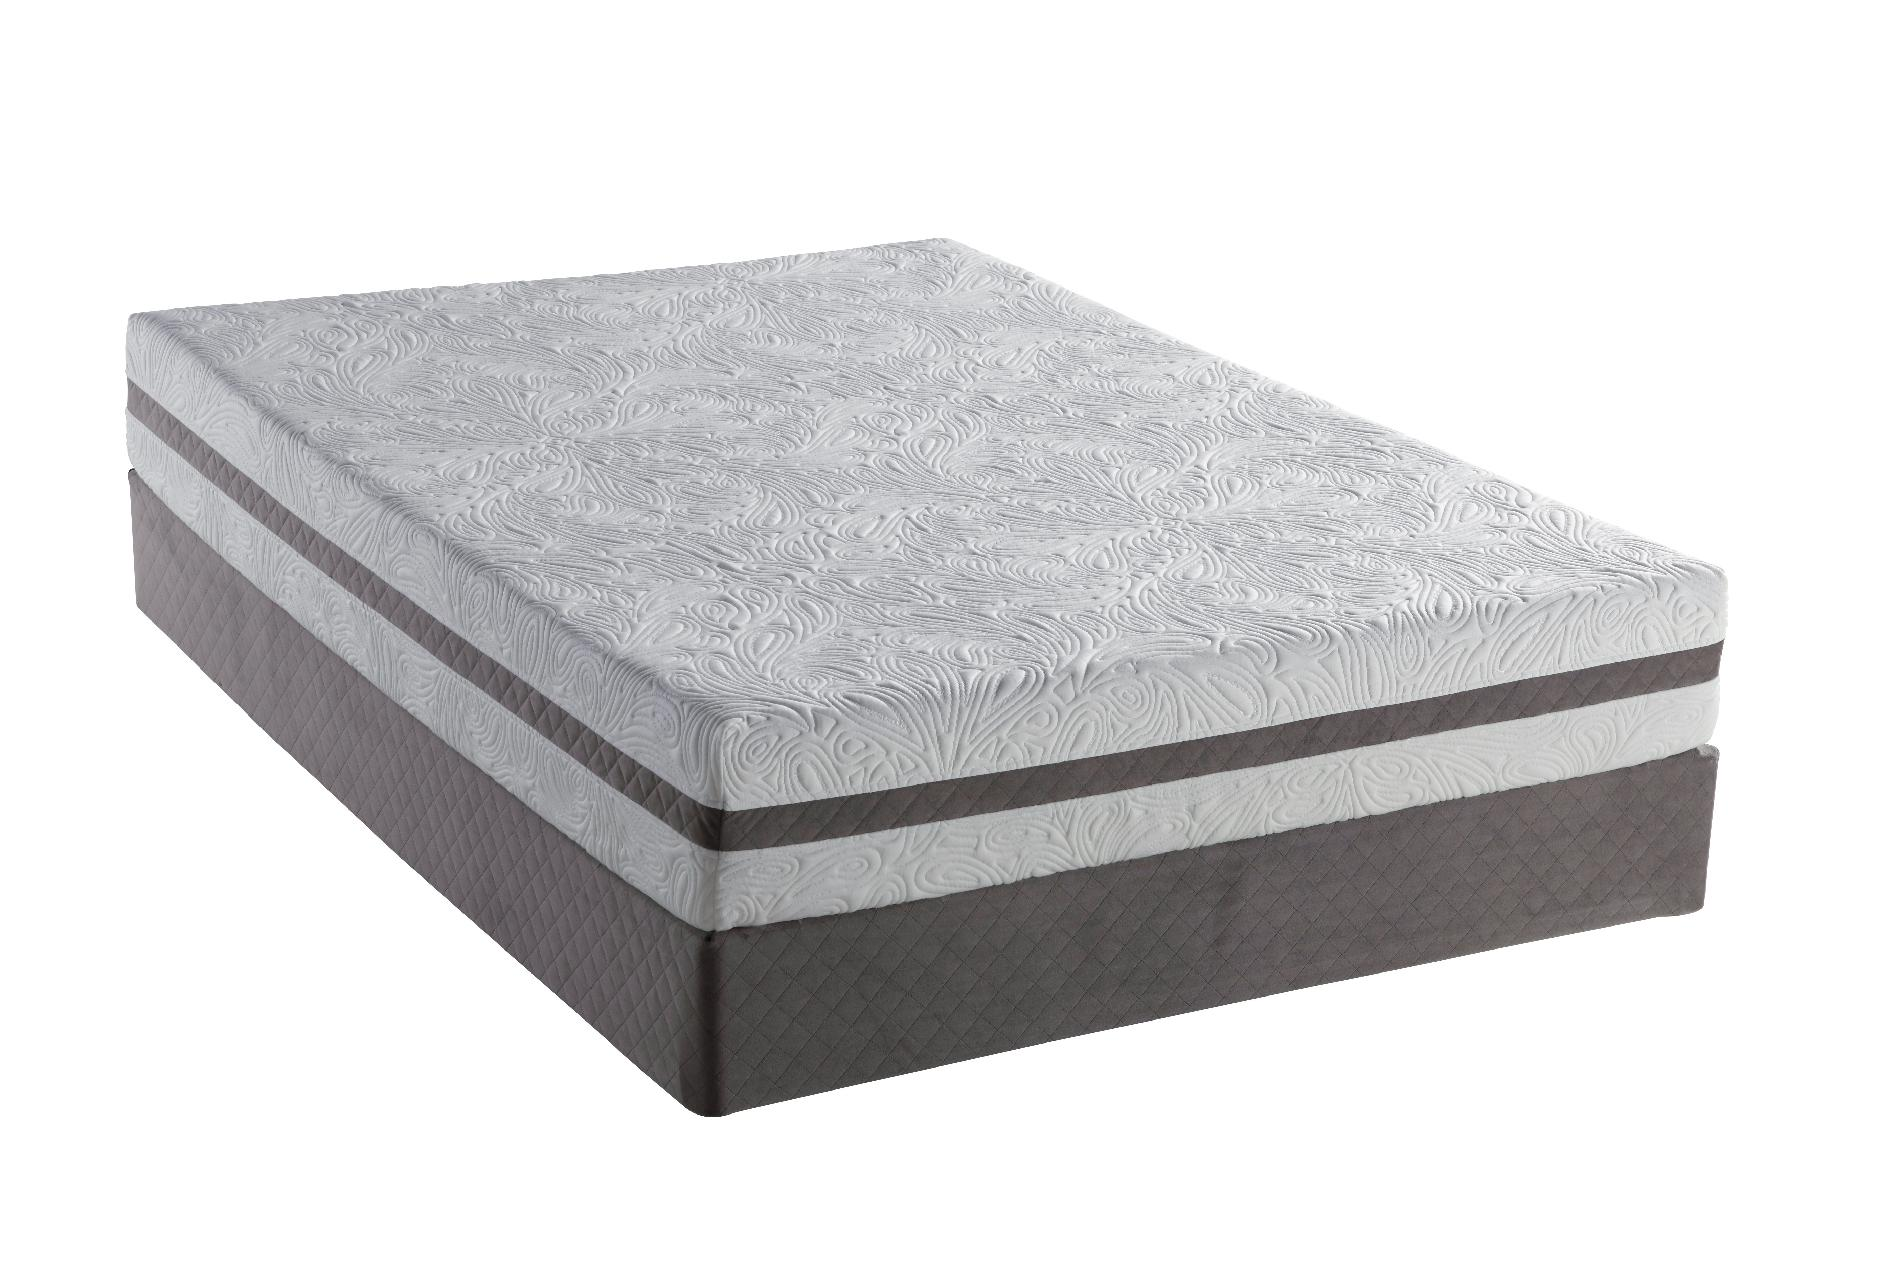 Sealy Posturepedic Optimum Radiance, Firm, California King Mattress Only